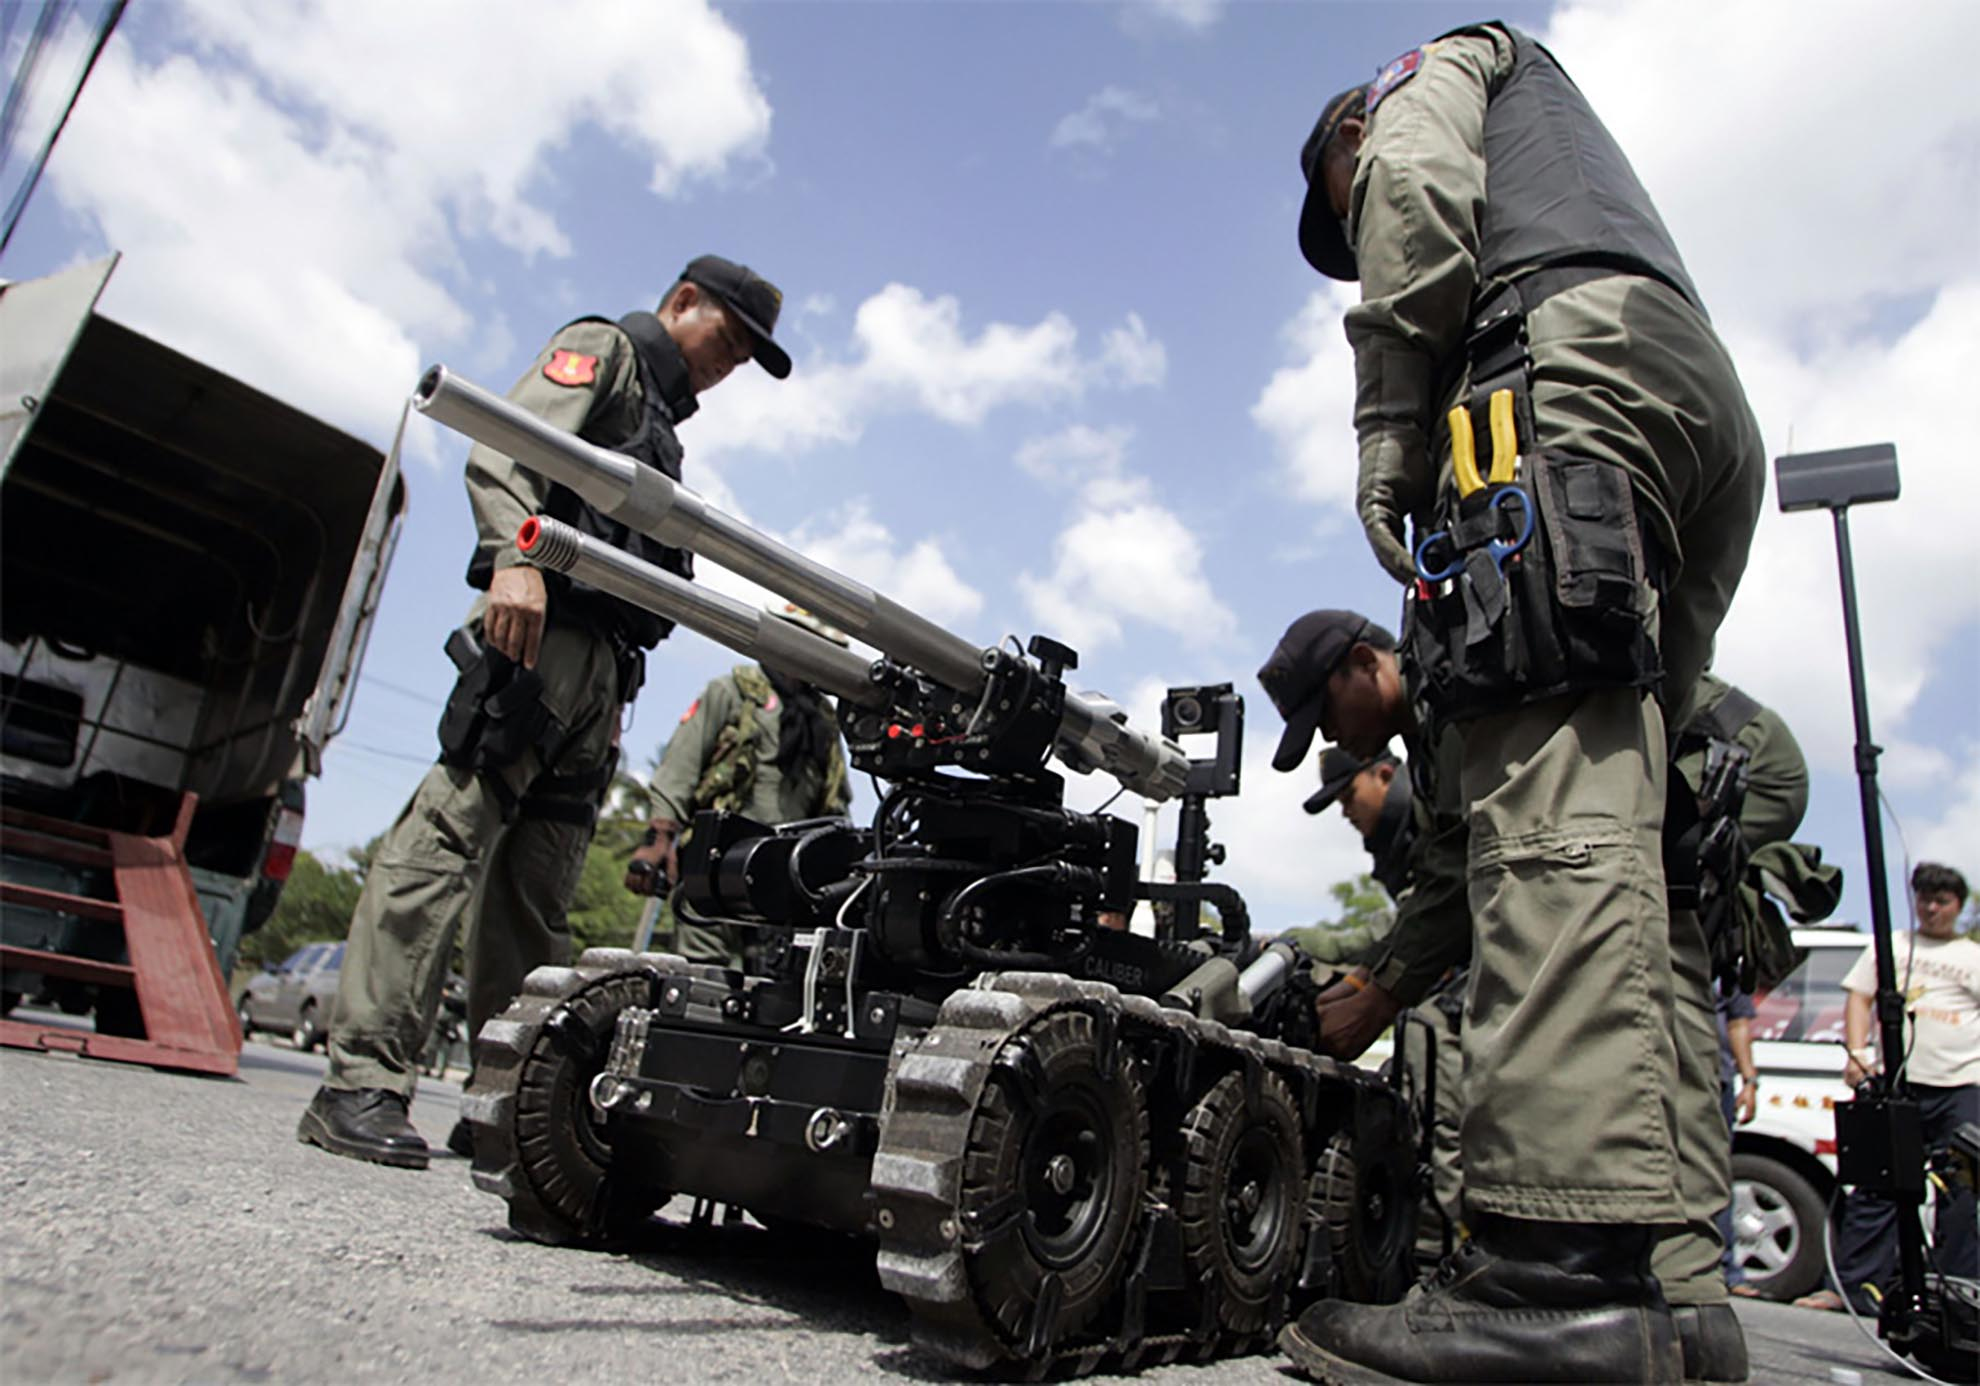 mk3-caliber-eod-robot-in-action